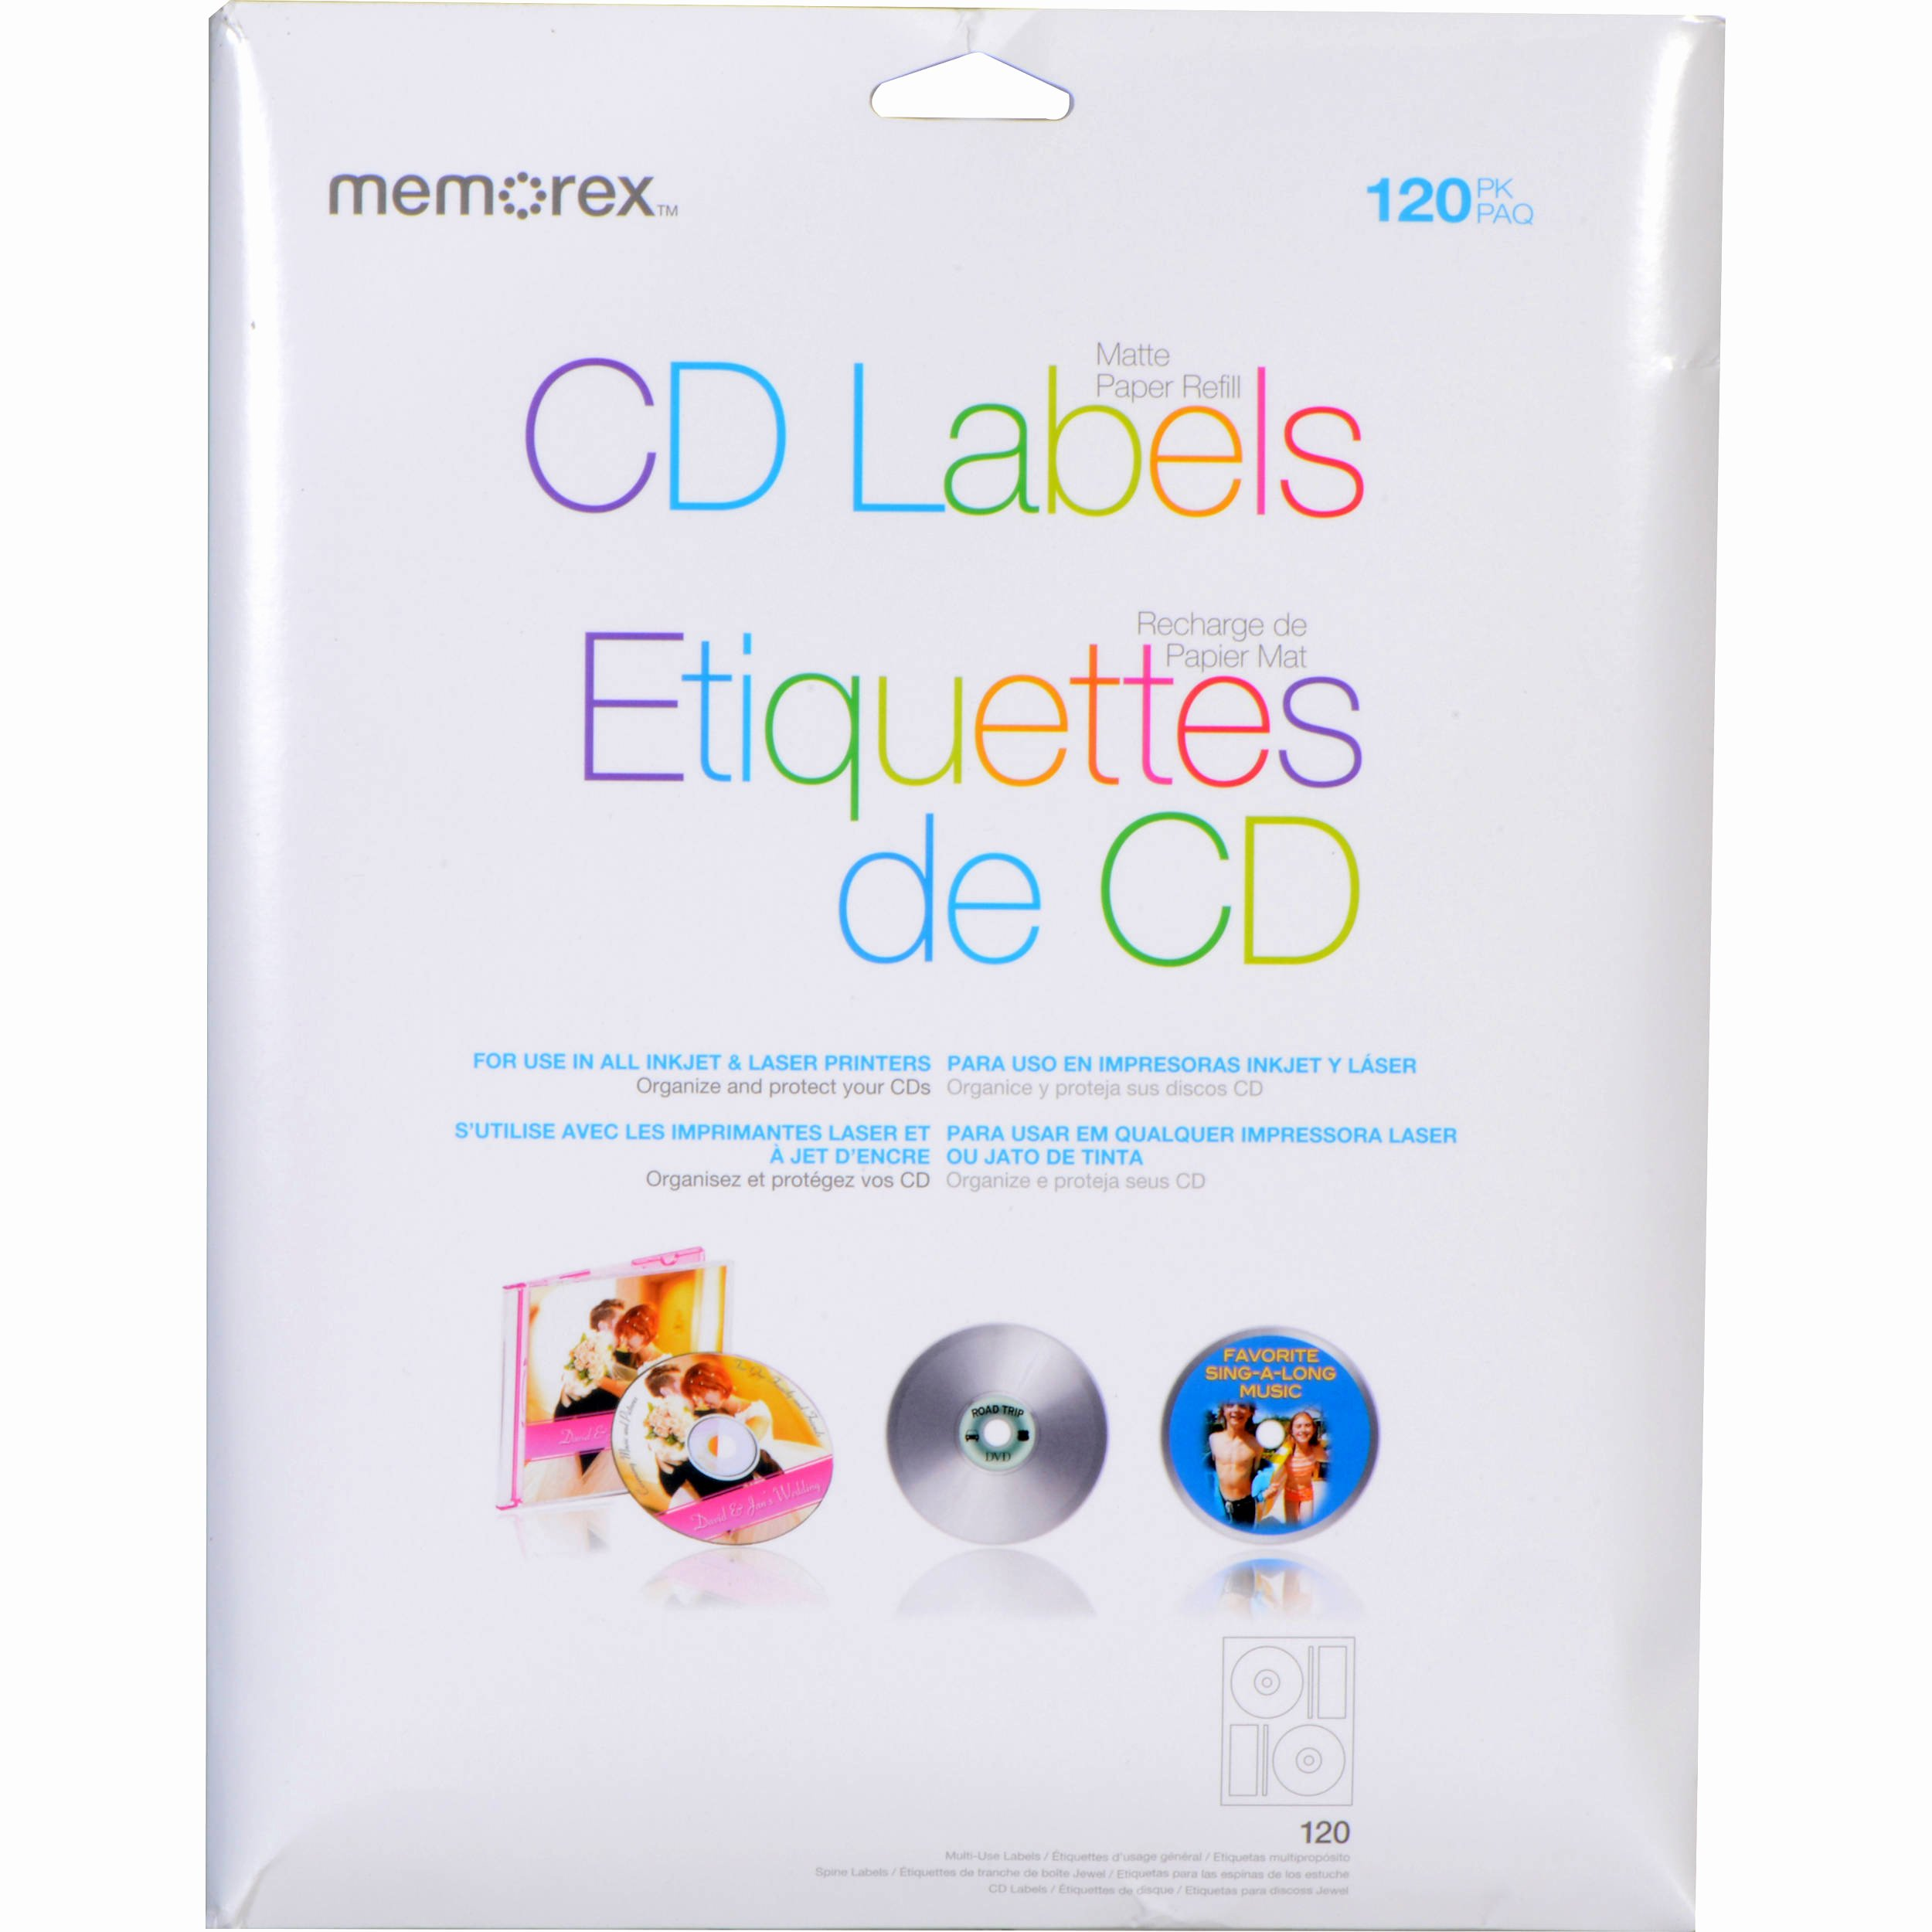 Memorex Cd Label Template Word Inspirational Blog Archives Programsbackuper